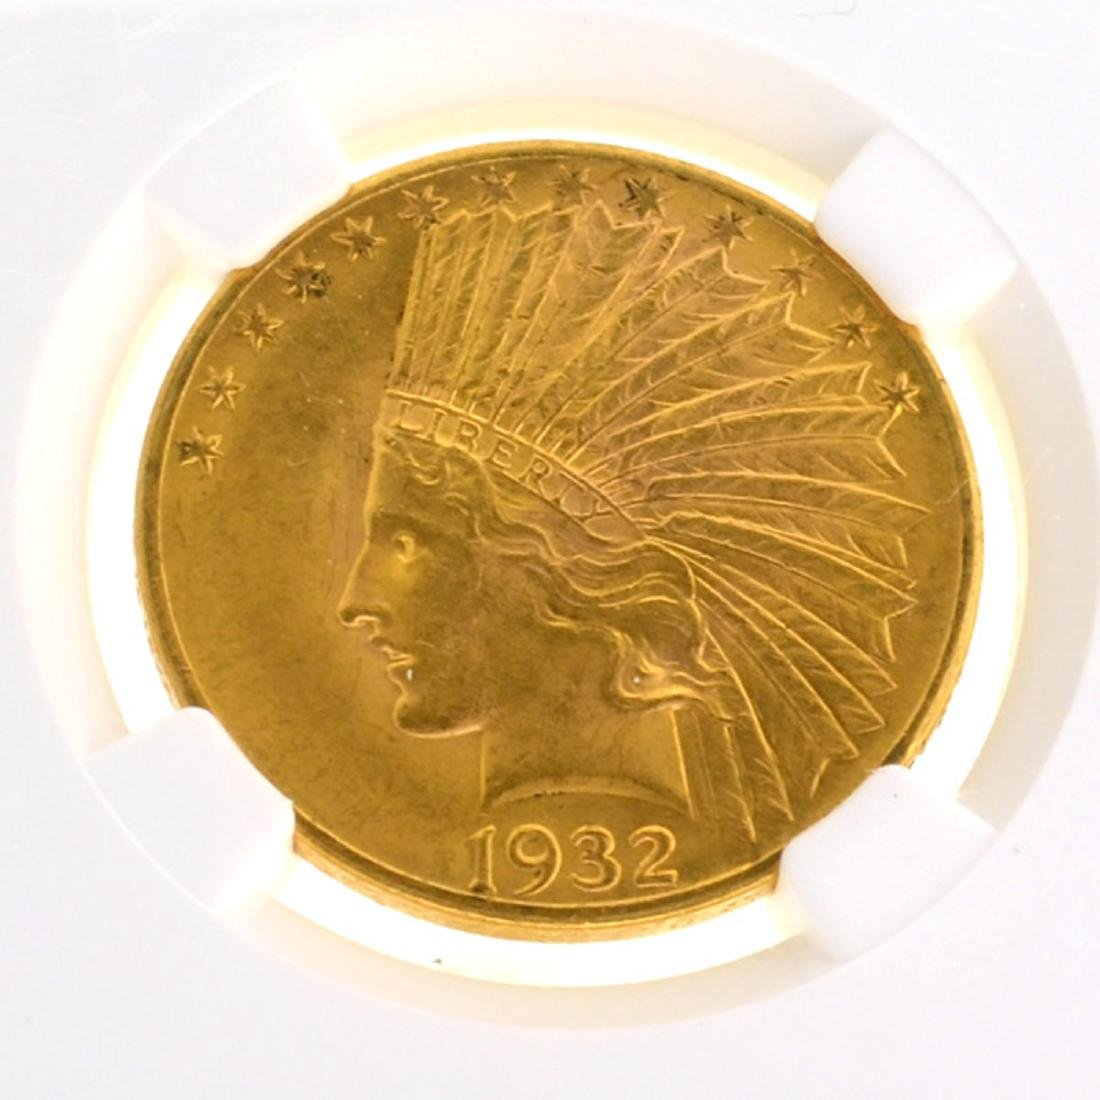 *1932 $10 U.S Indian Head Gold Coin